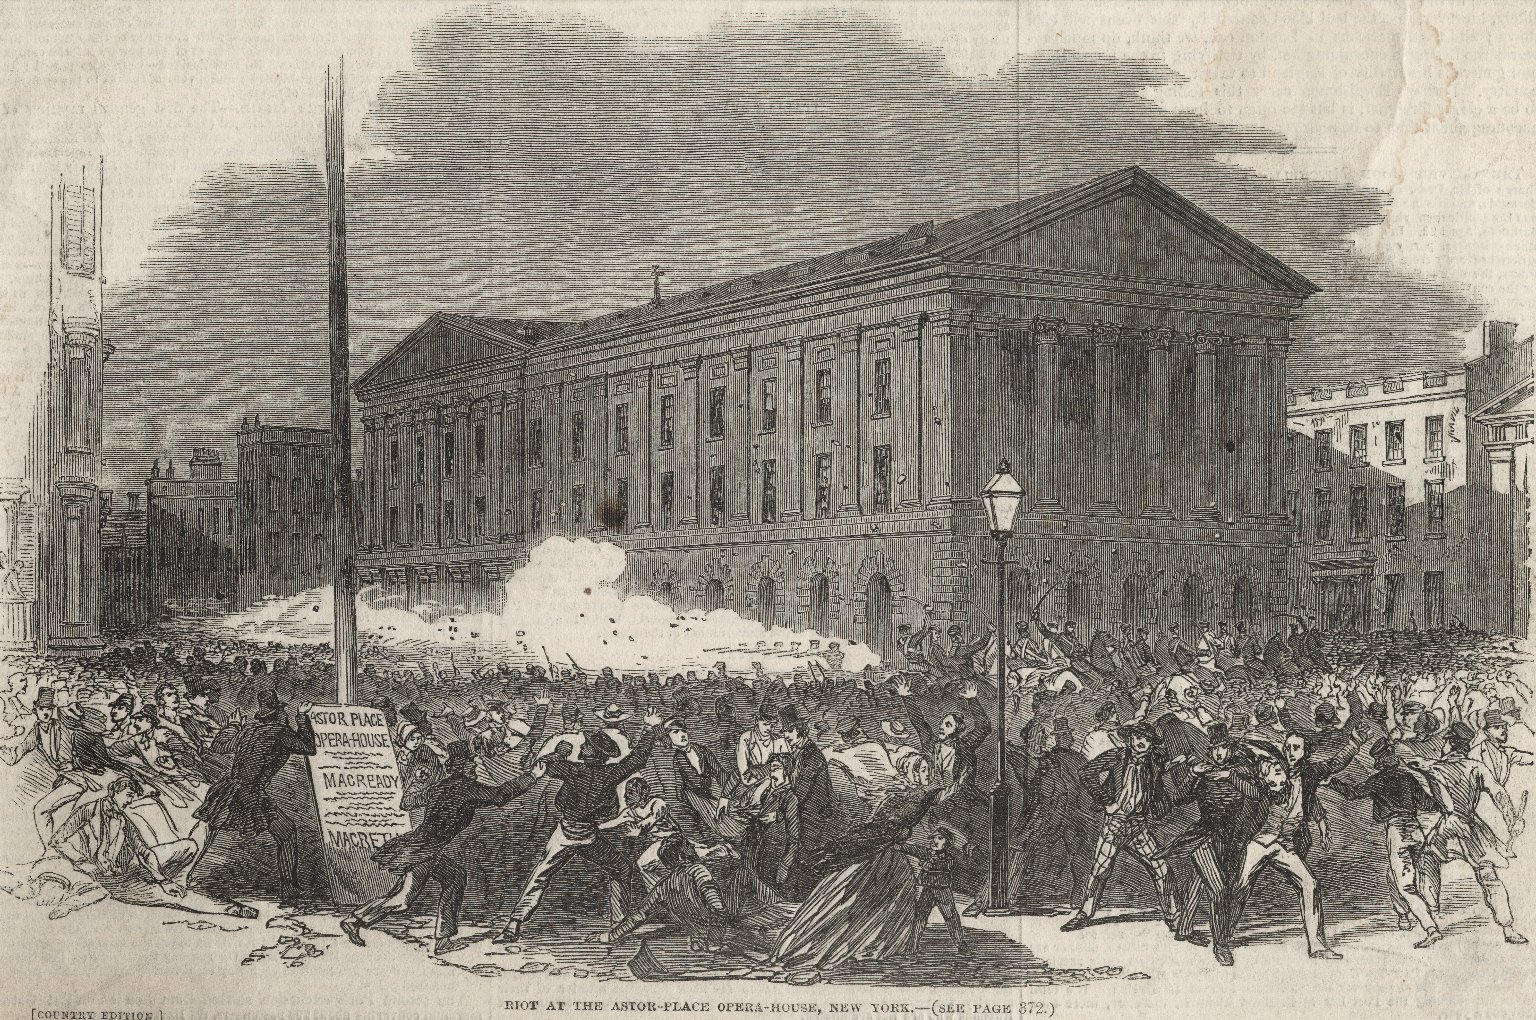 Riot at the Astor-Place Opera-House, New York (see page 372) [graphic].